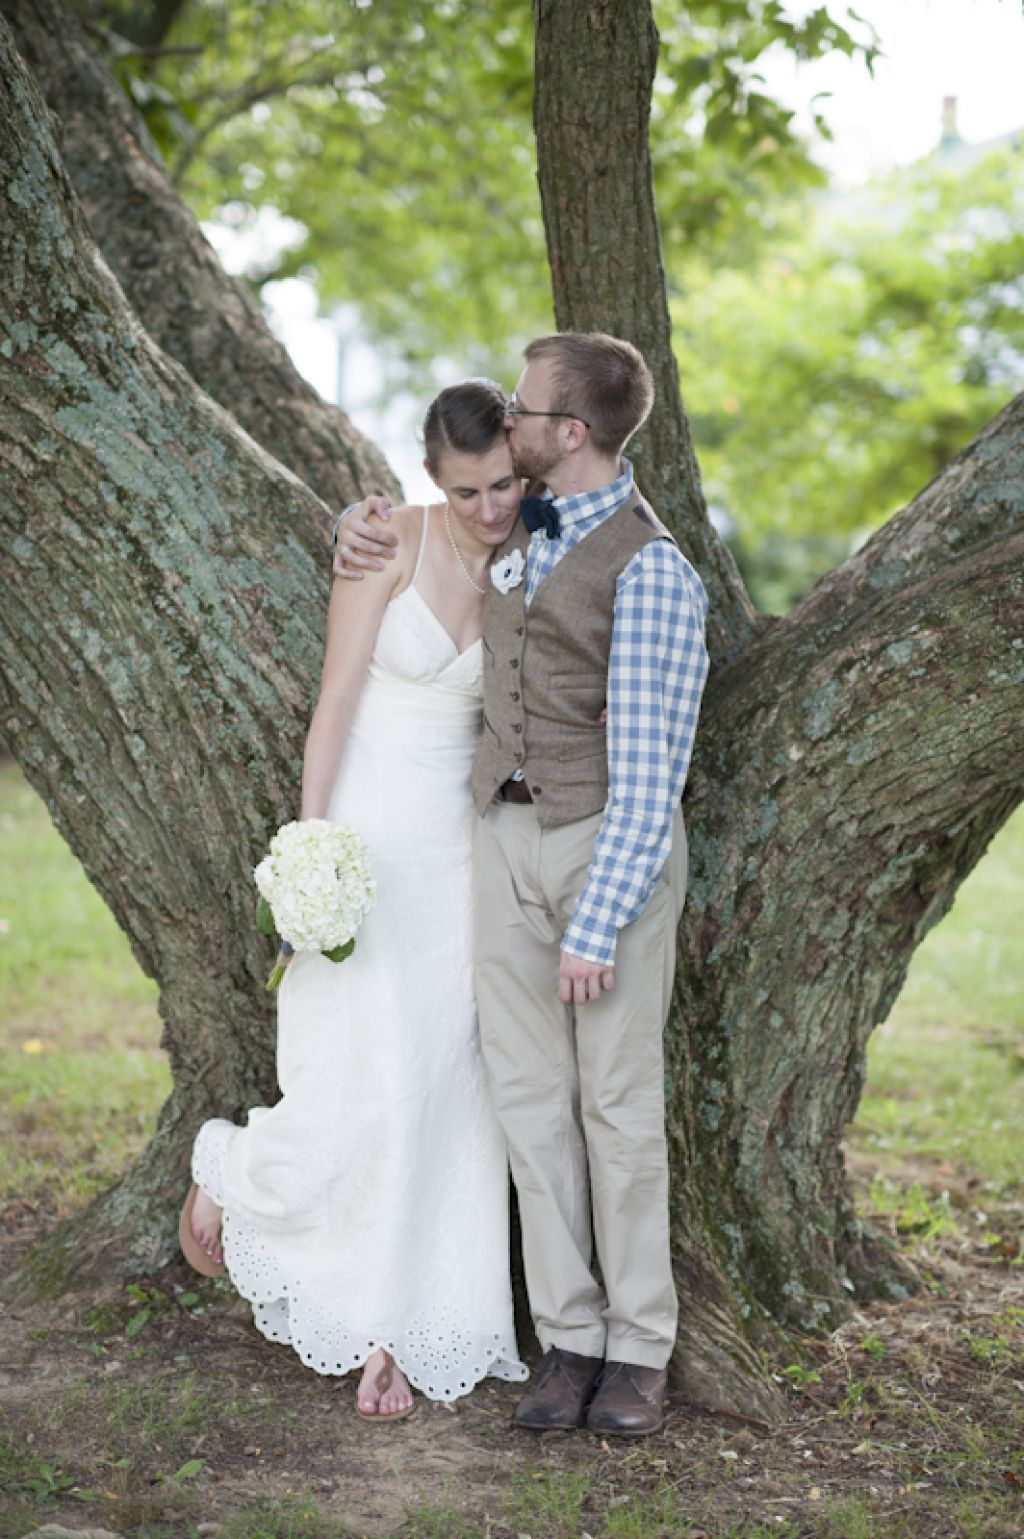 Casual Groom Wedding Attire Pictures | Clothes for Michael Maybe ...